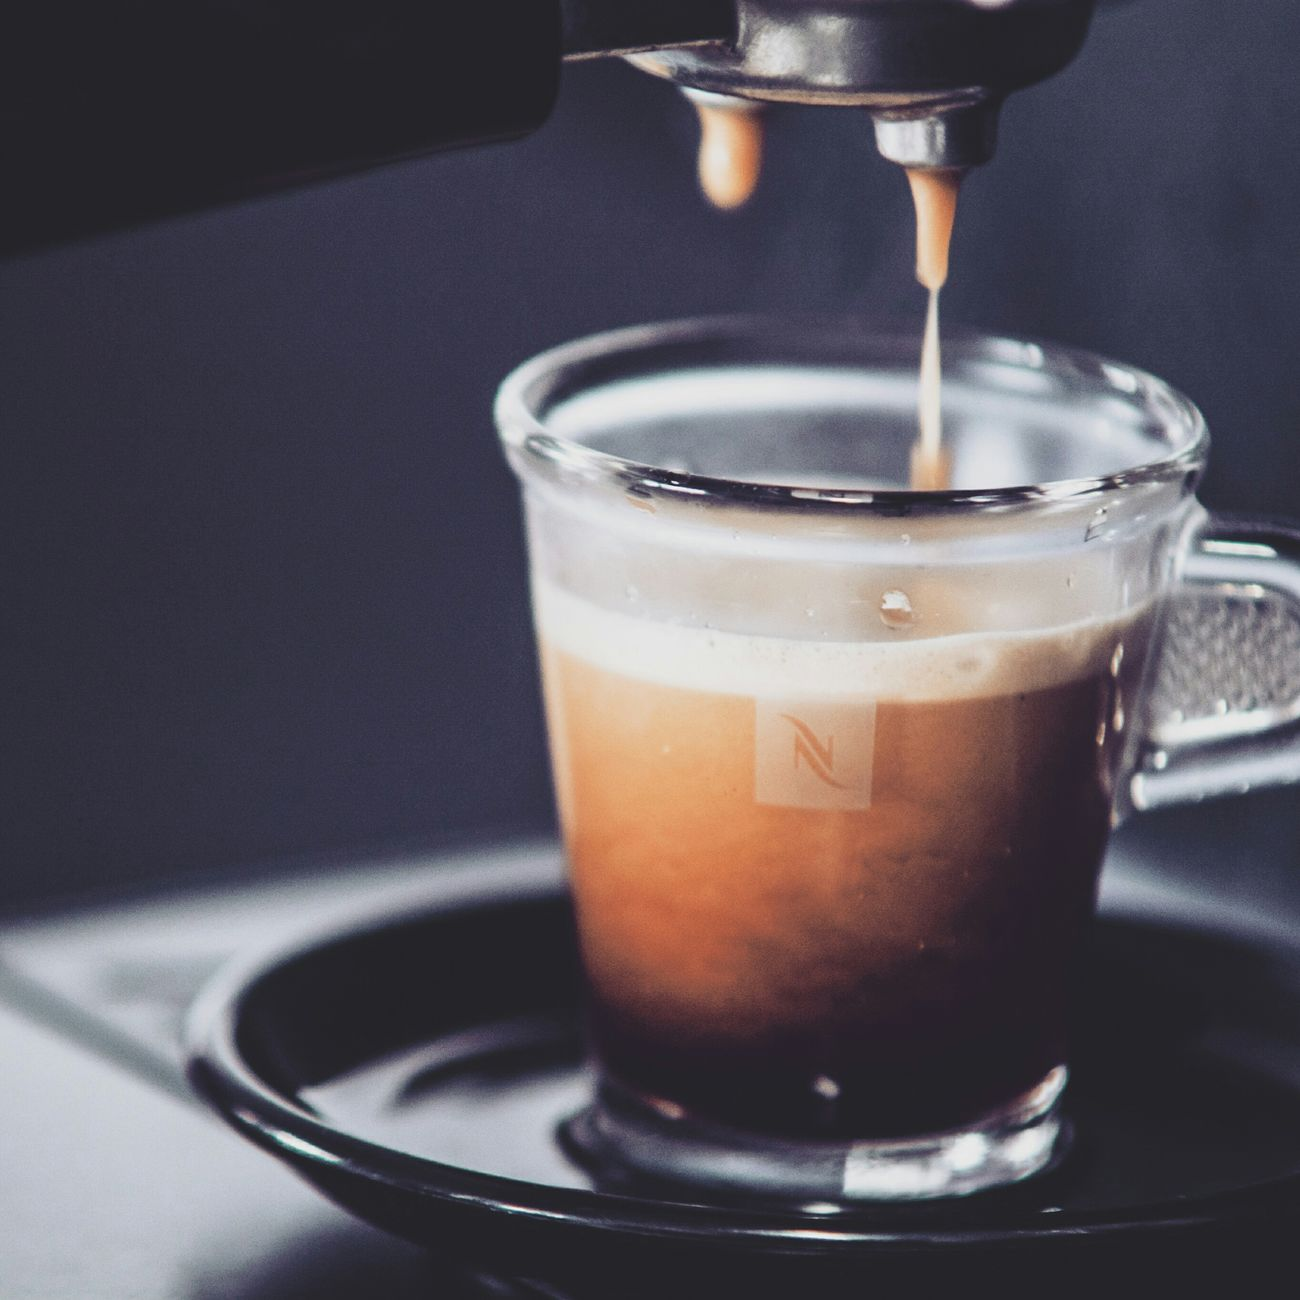 Um amor, um café. Quentes, por favor! Cafe Time Caffee Coffee Time Coffee Coffee ☕ Nespresso Nespresso Time Nespressomoments Nespresso... What Else…? Caffè